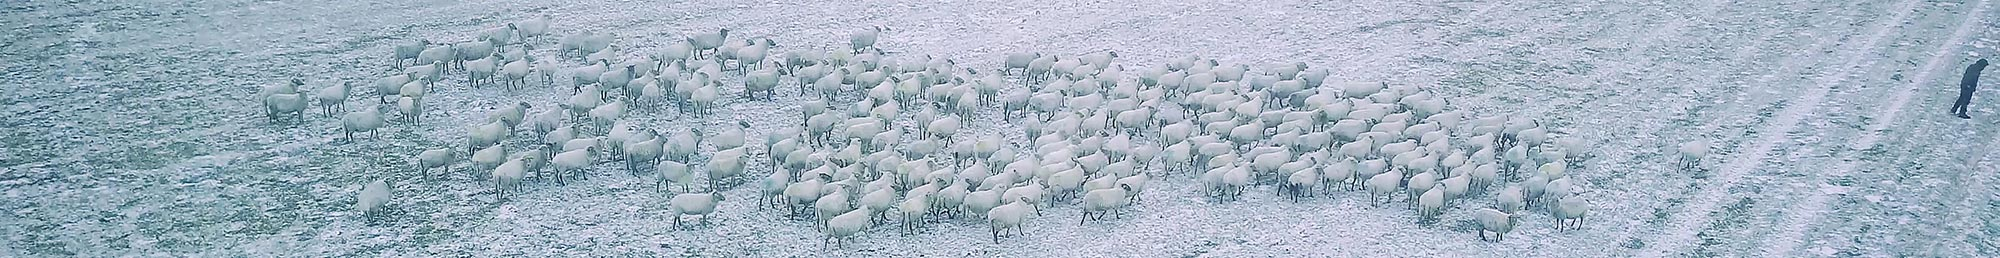 Ton van Zantvoort - SHEEP HERO documentary snow